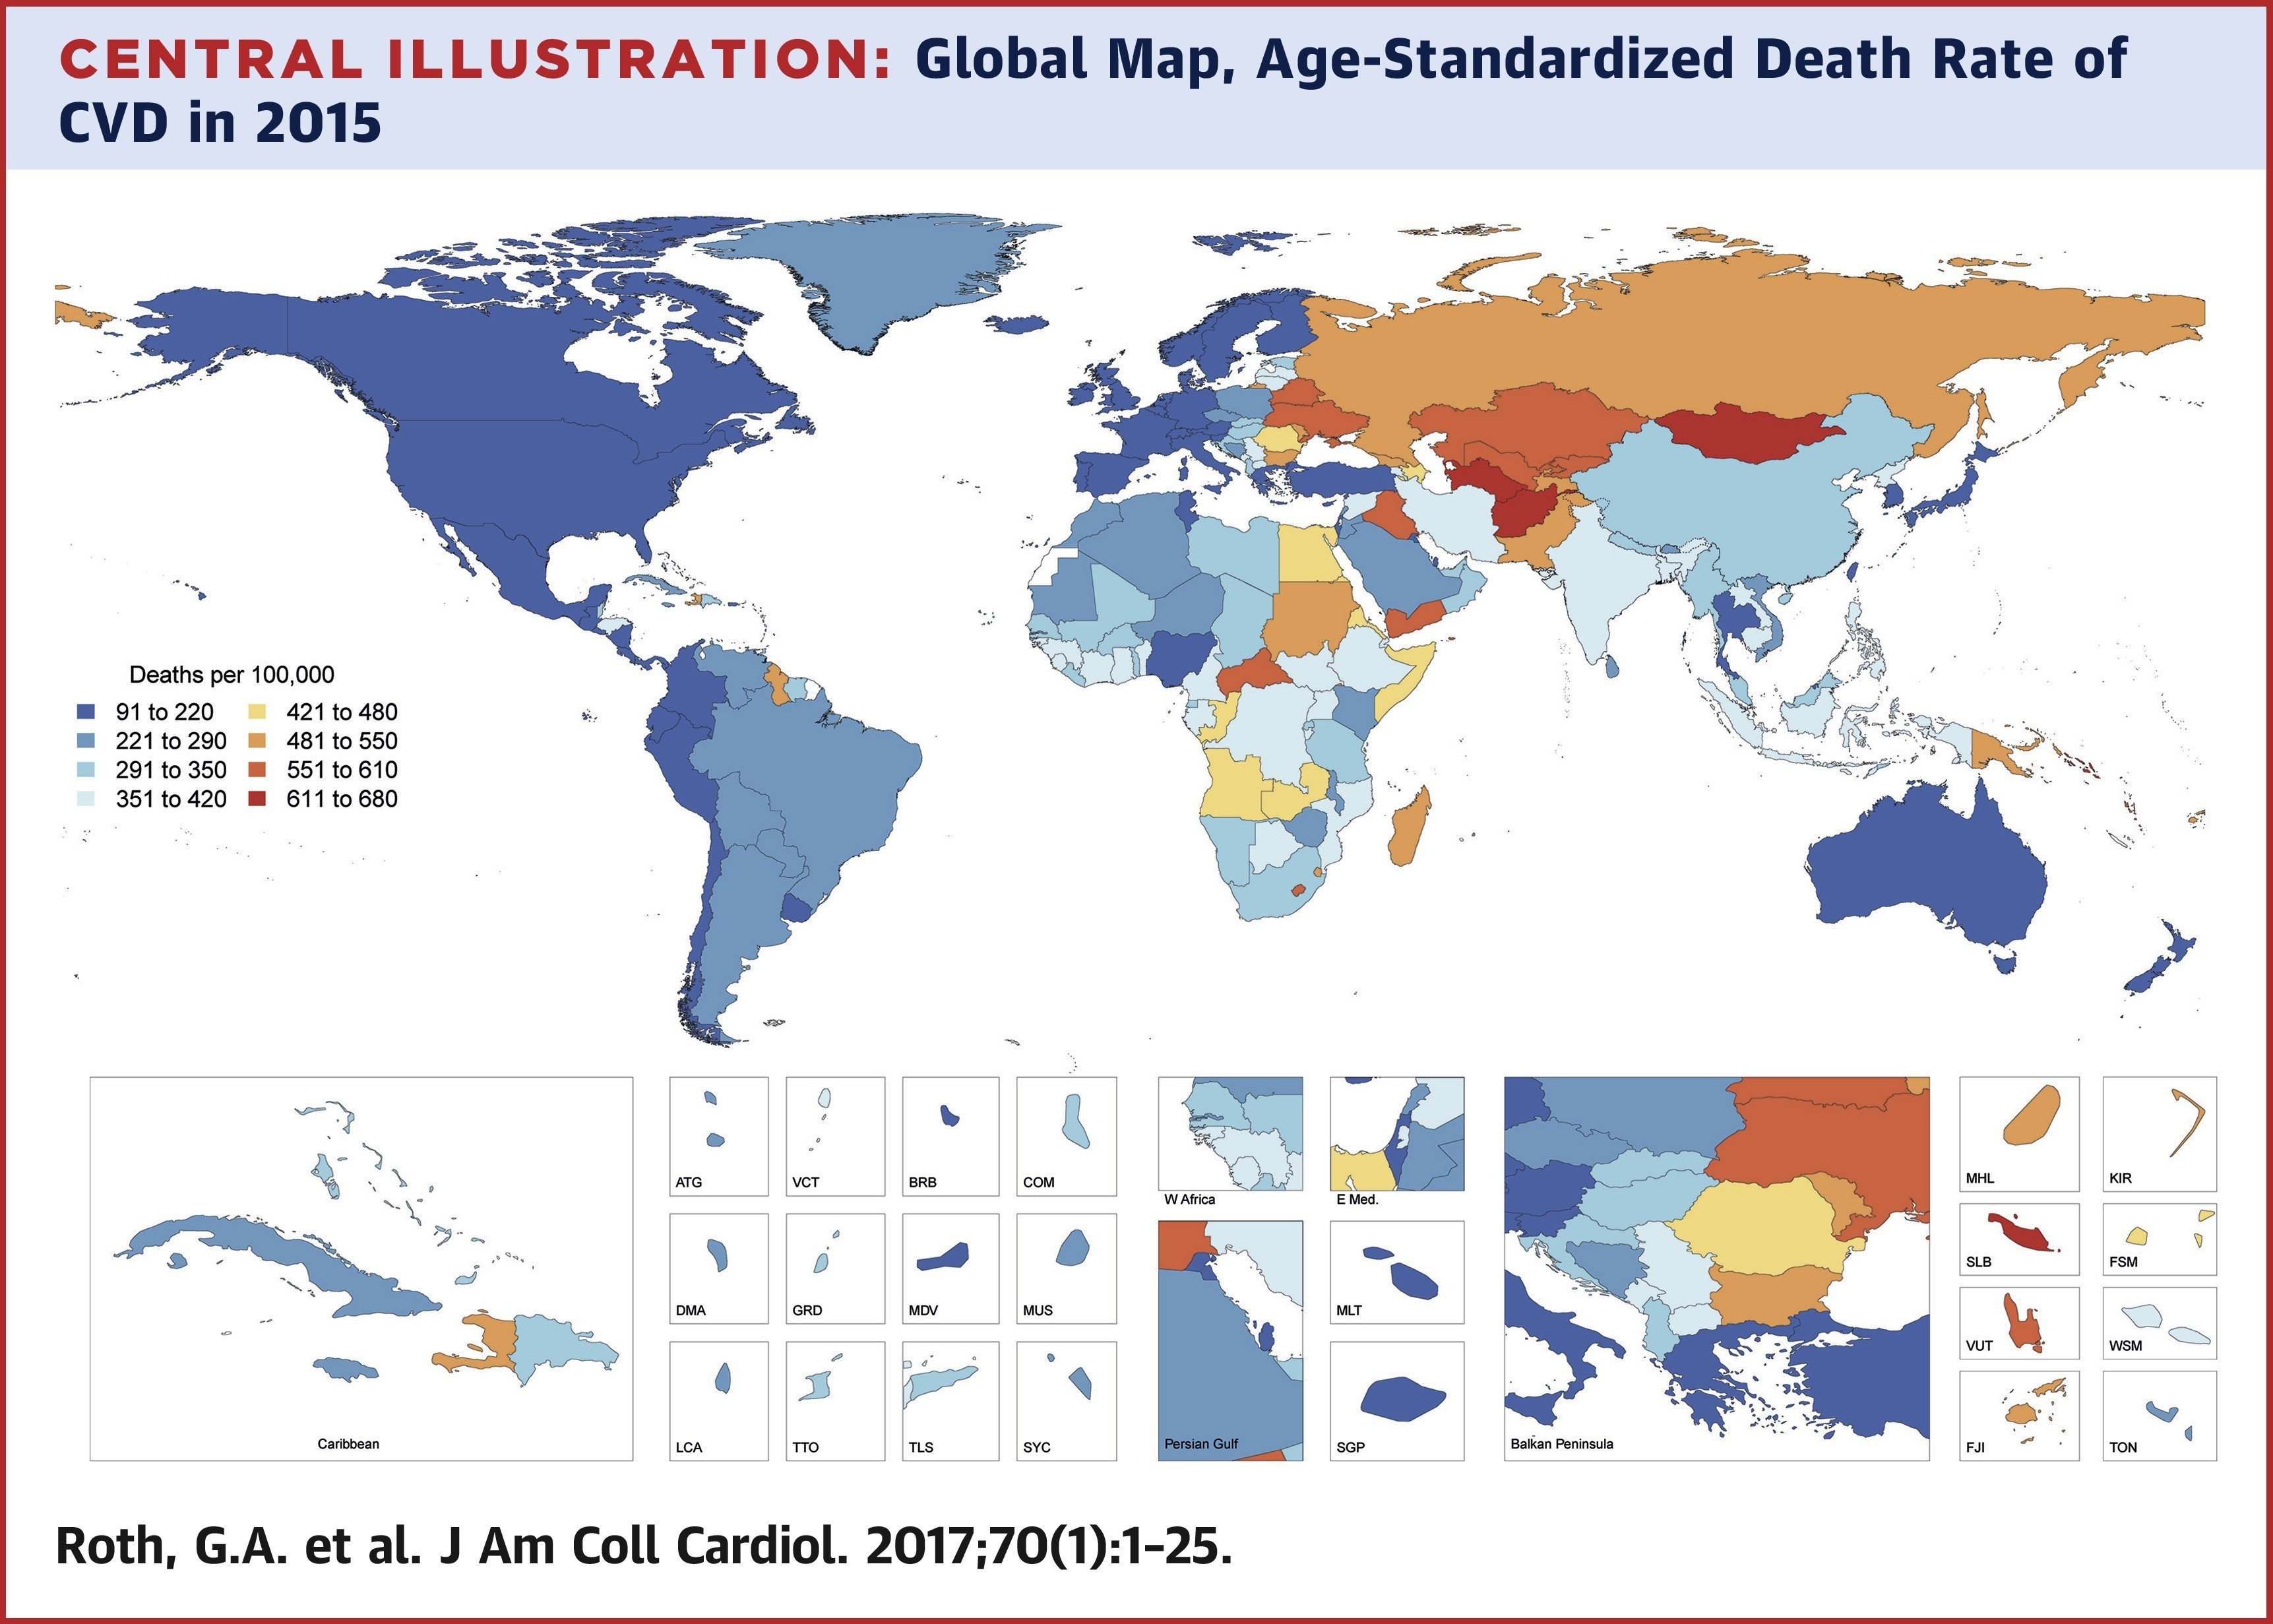 Cardiovascular disease is a growing issue around the world